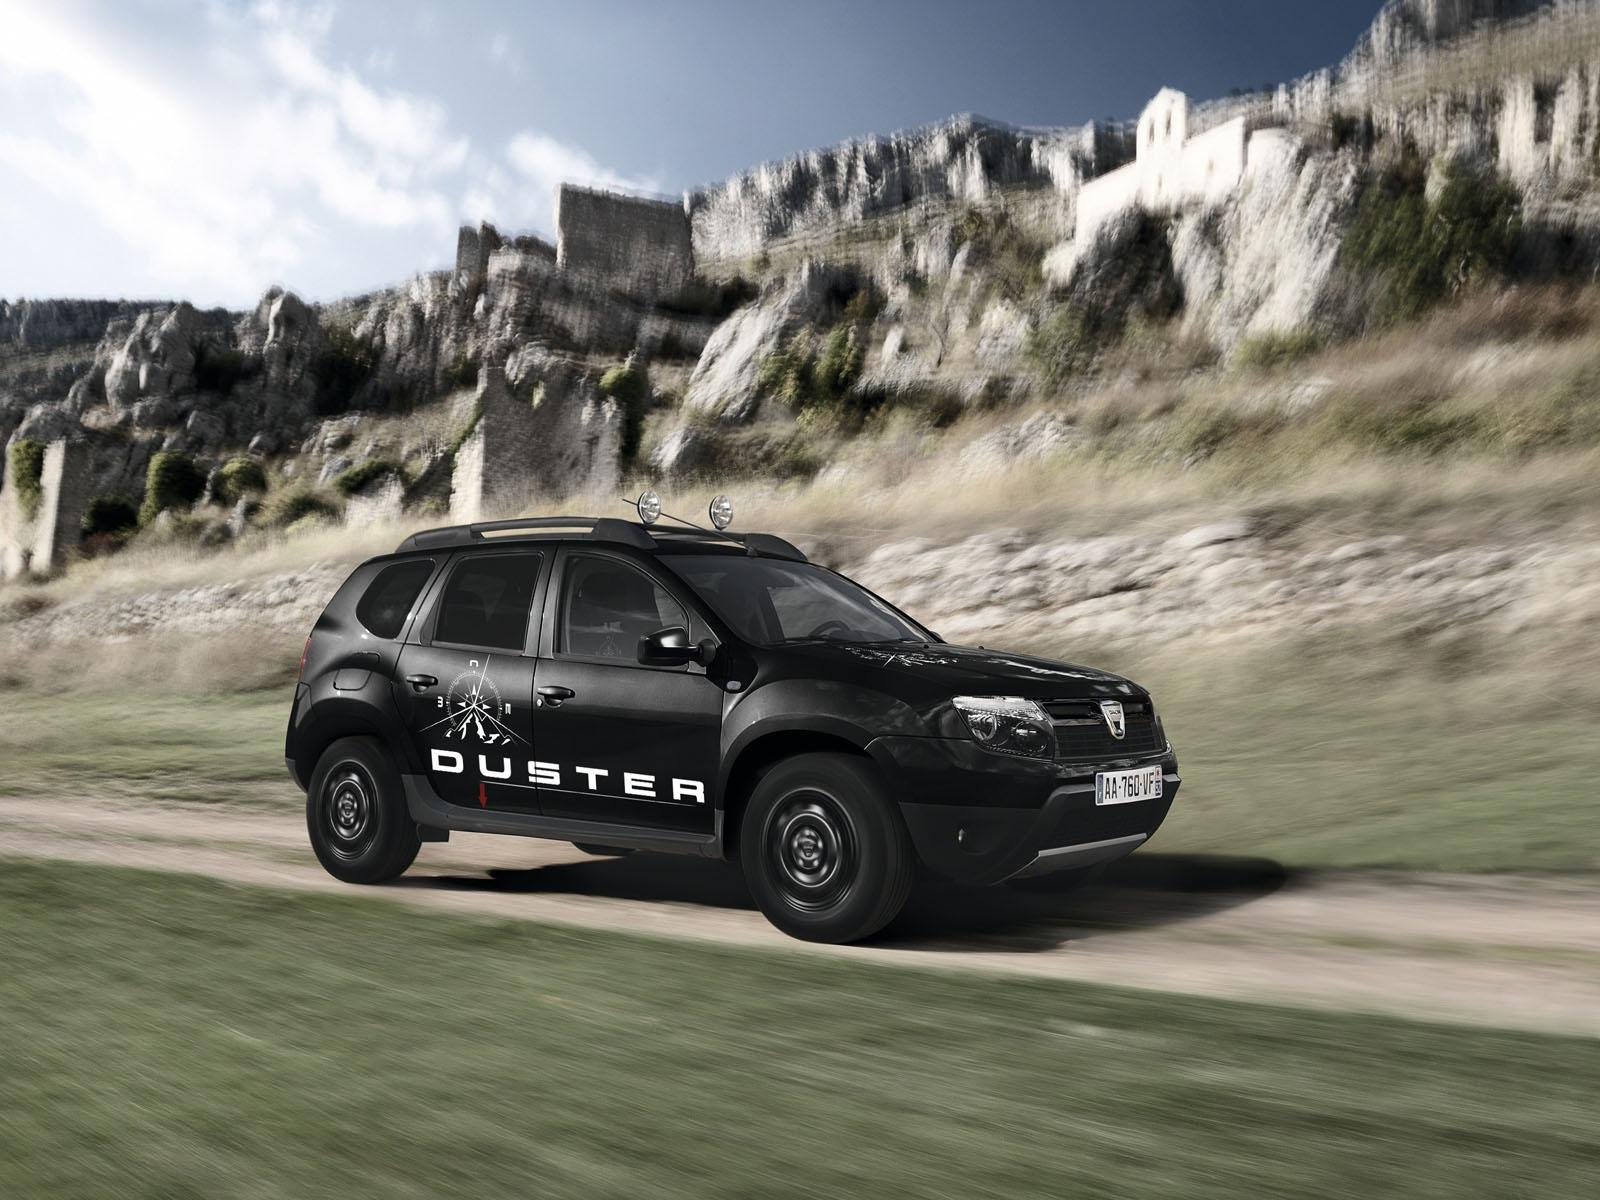 2013 dacia duster aventure edition picture 82729. Black Bedroom Furniture Sets. Home Design Ideas